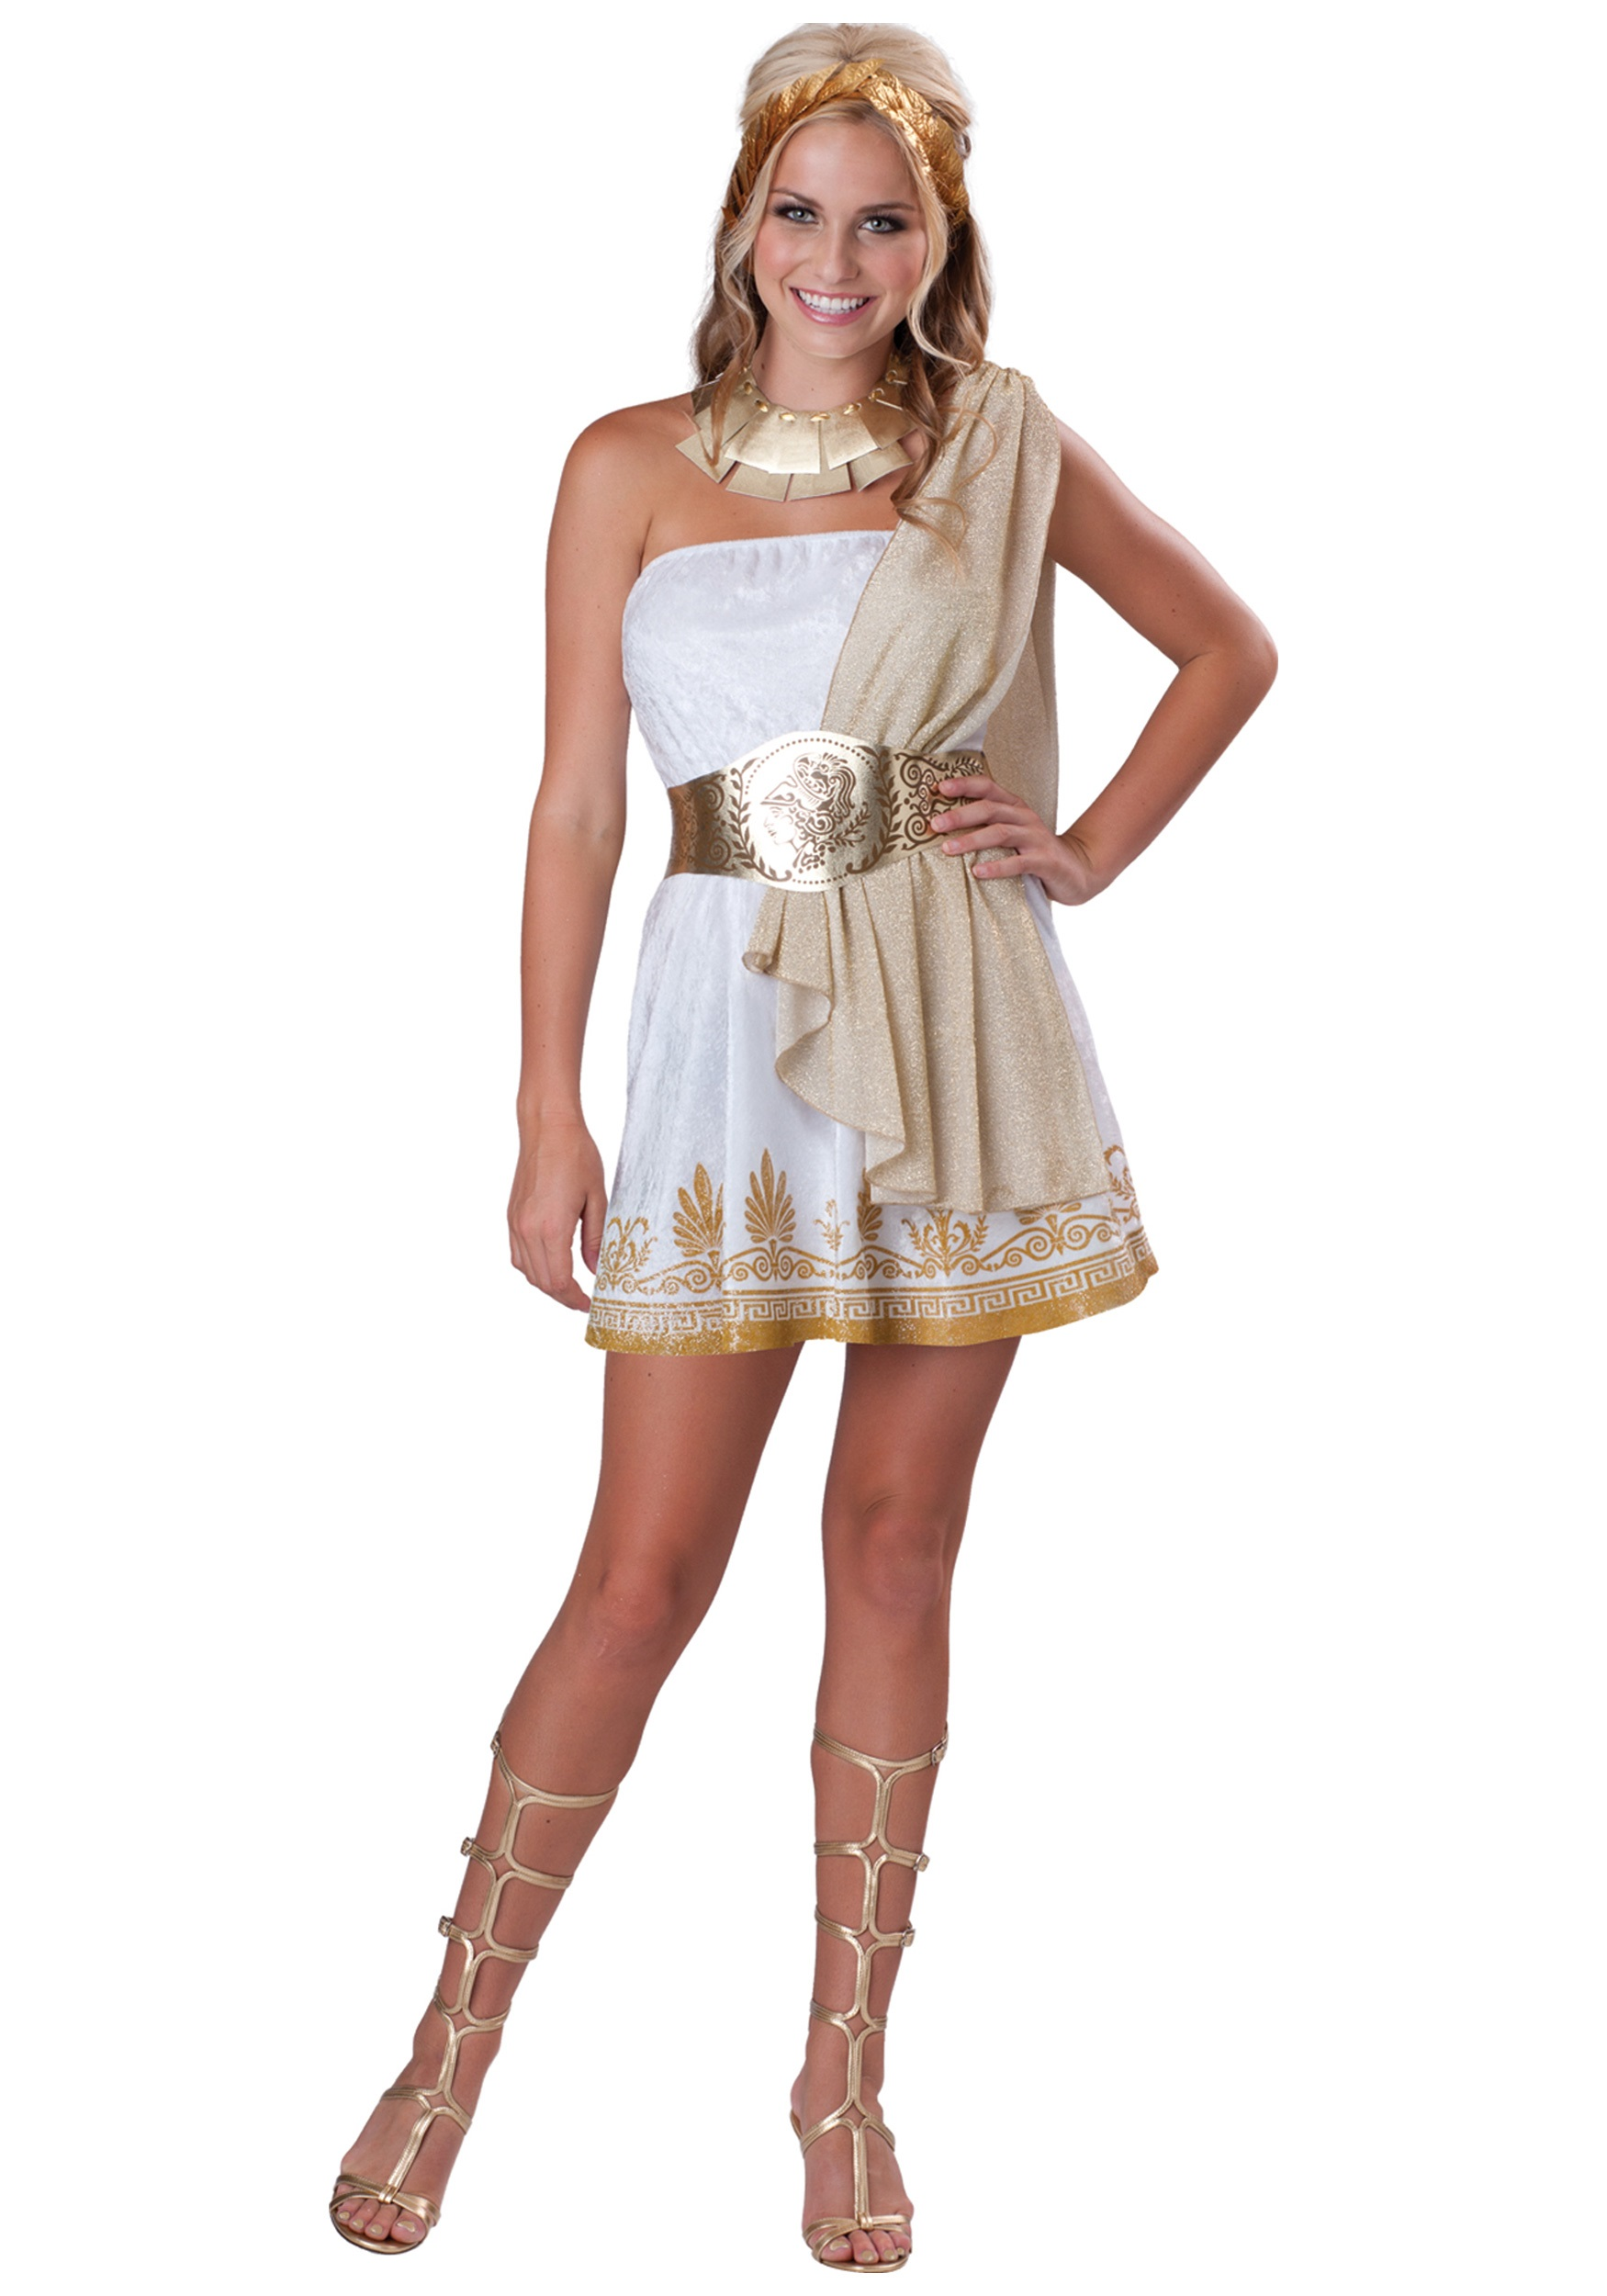 Teen Glitzy Goddess Costume  sc 1 st  Halloween Costumes & Teen Glitzy Goddess Costume - Halloween Costume Ideas 2018